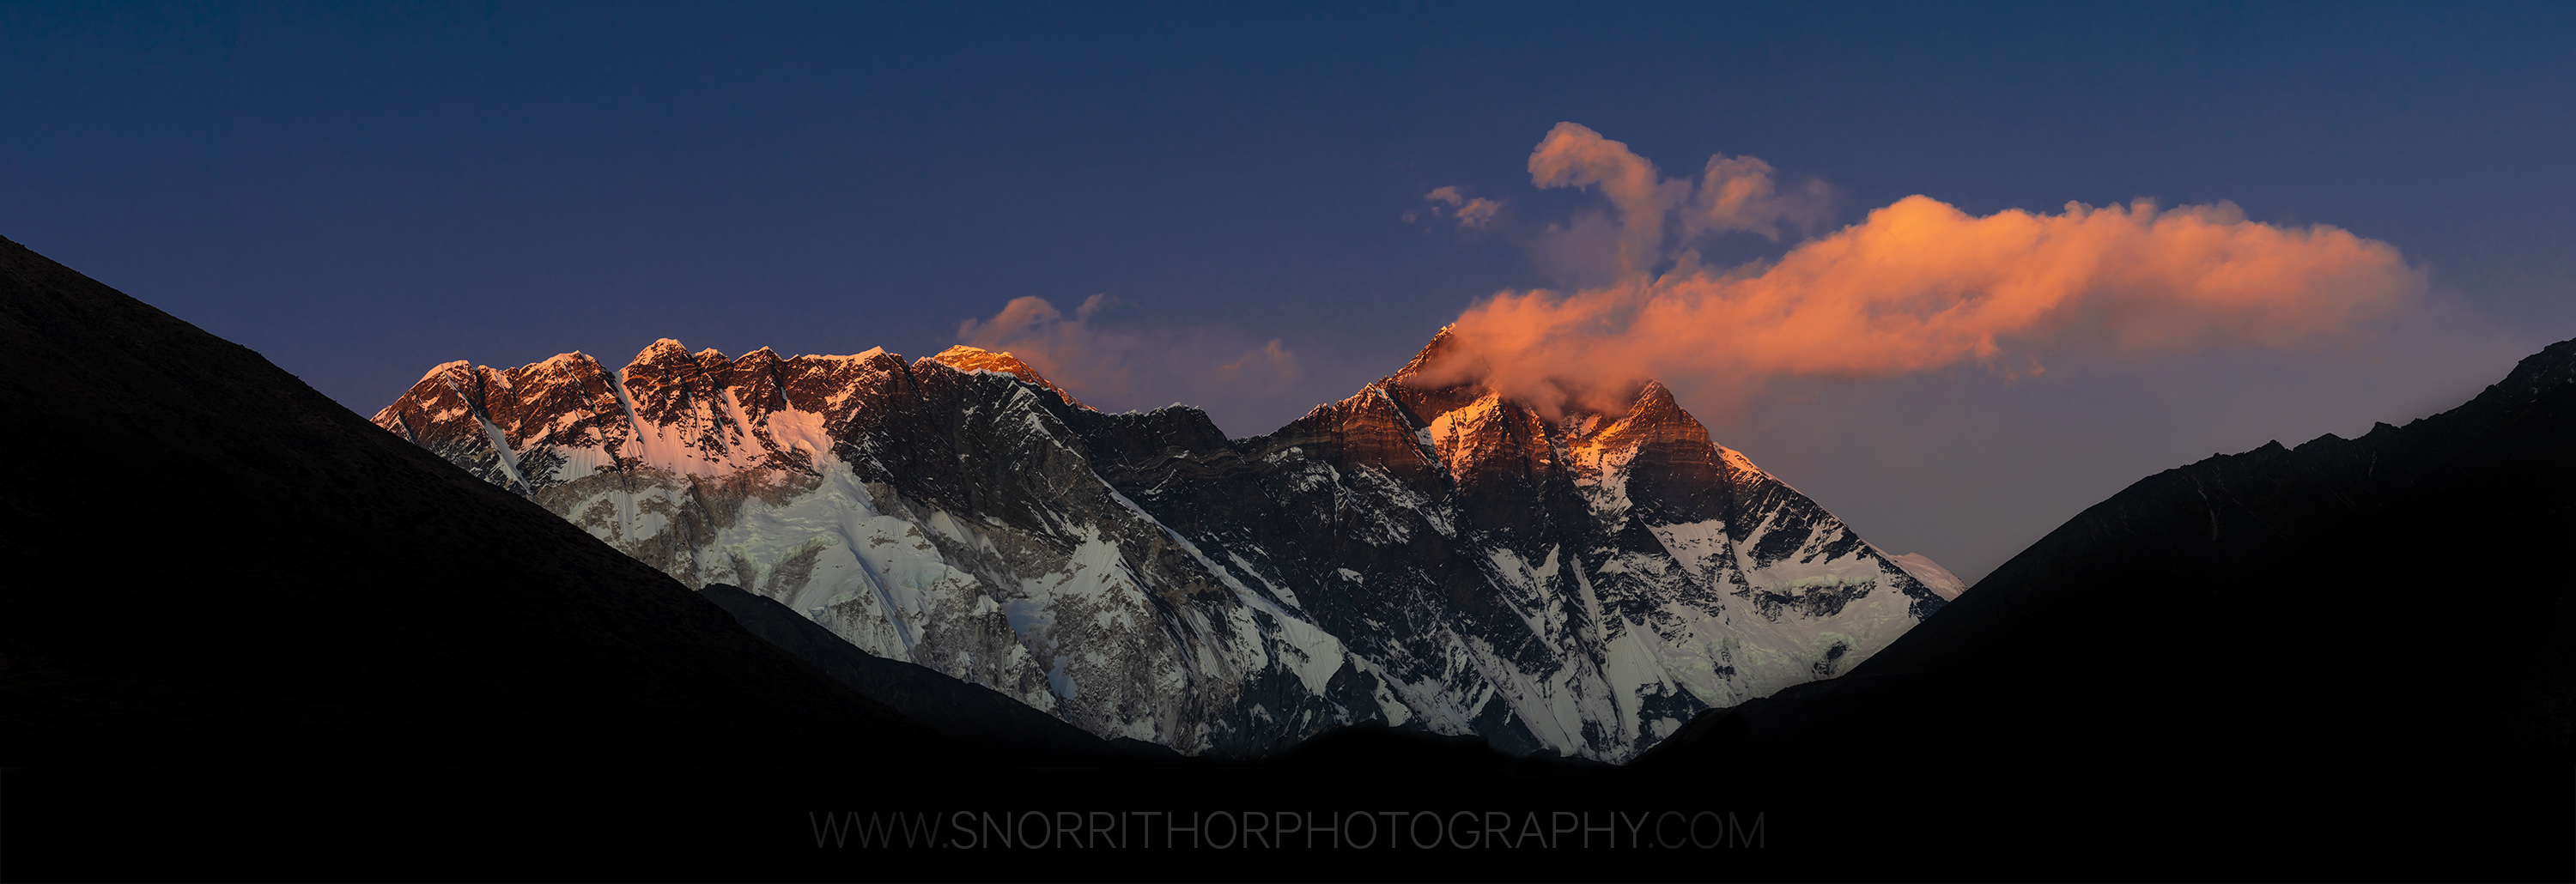 mt.Everest & Lhotse